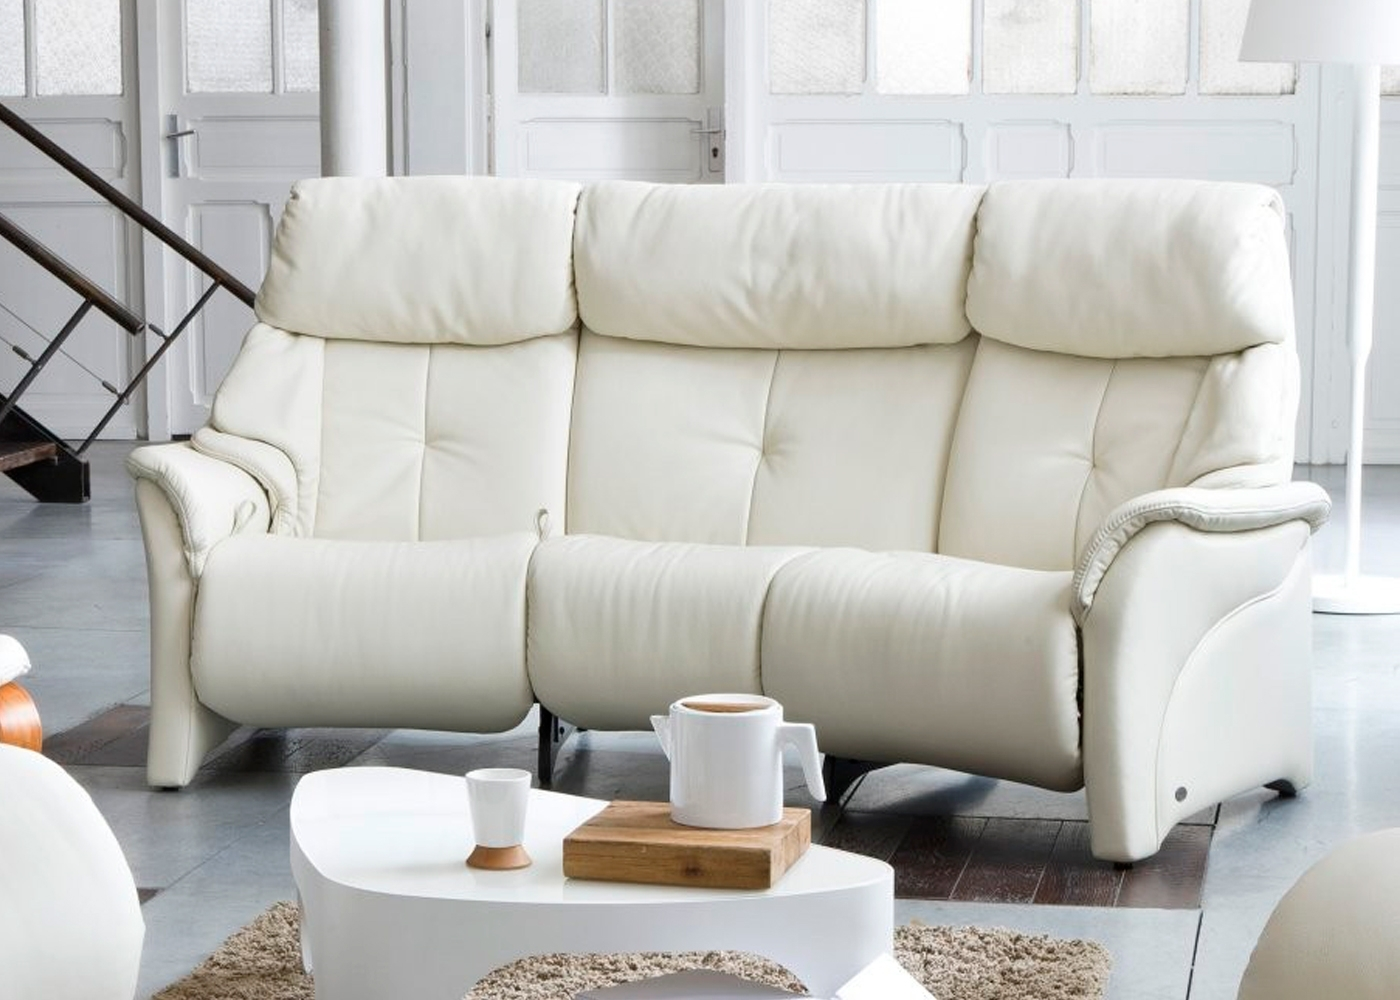 Himolla Chester 3 Seater Curved Recliner | Midfurn Furniture Superstore Inside Curved Recliner Sofas (View 1 of 10)